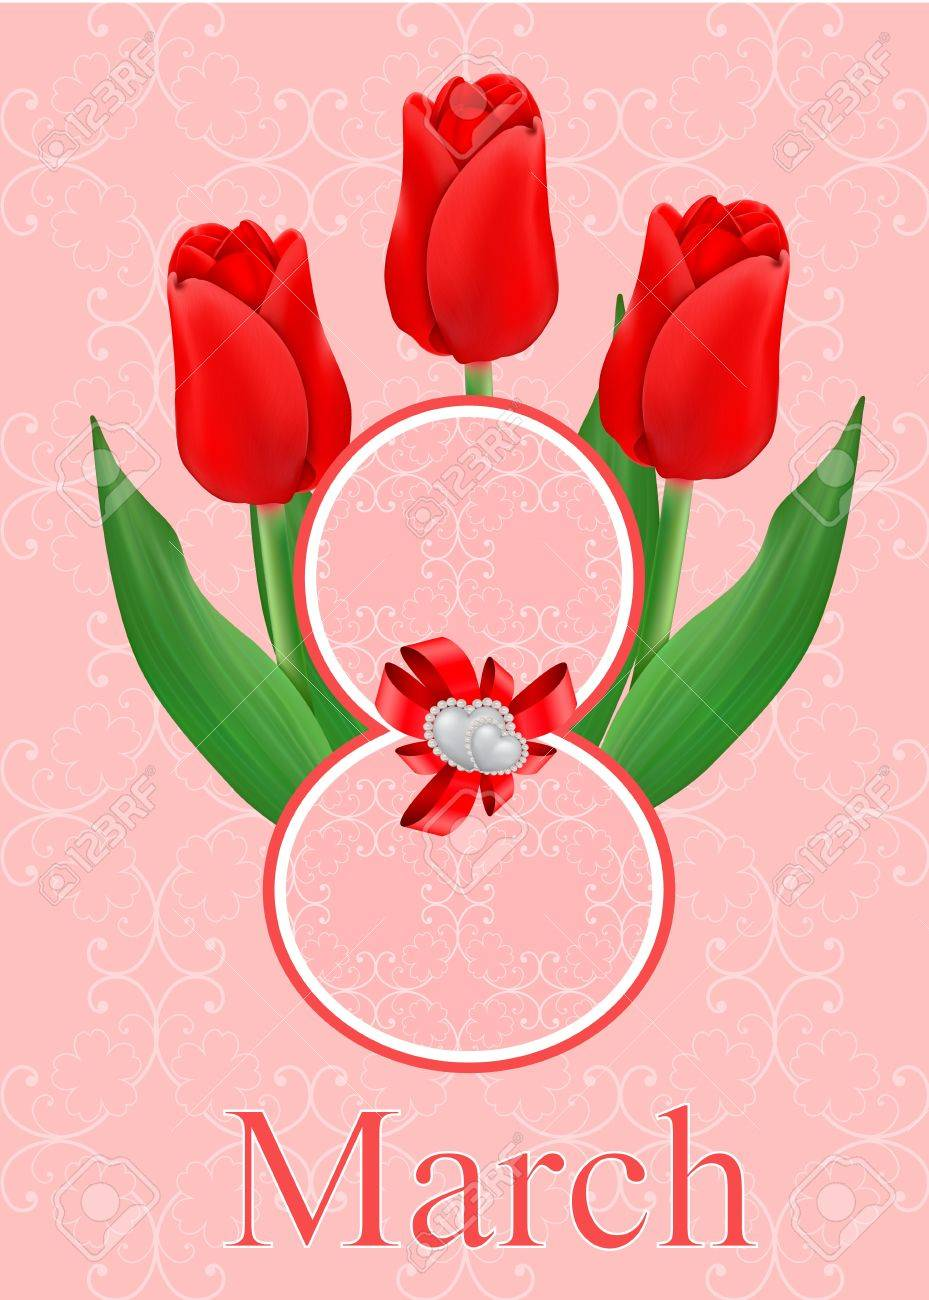 vector greeting card with bouquet of red tulips, may be used as a Women s Day backdrop Stock Vector - 17666260